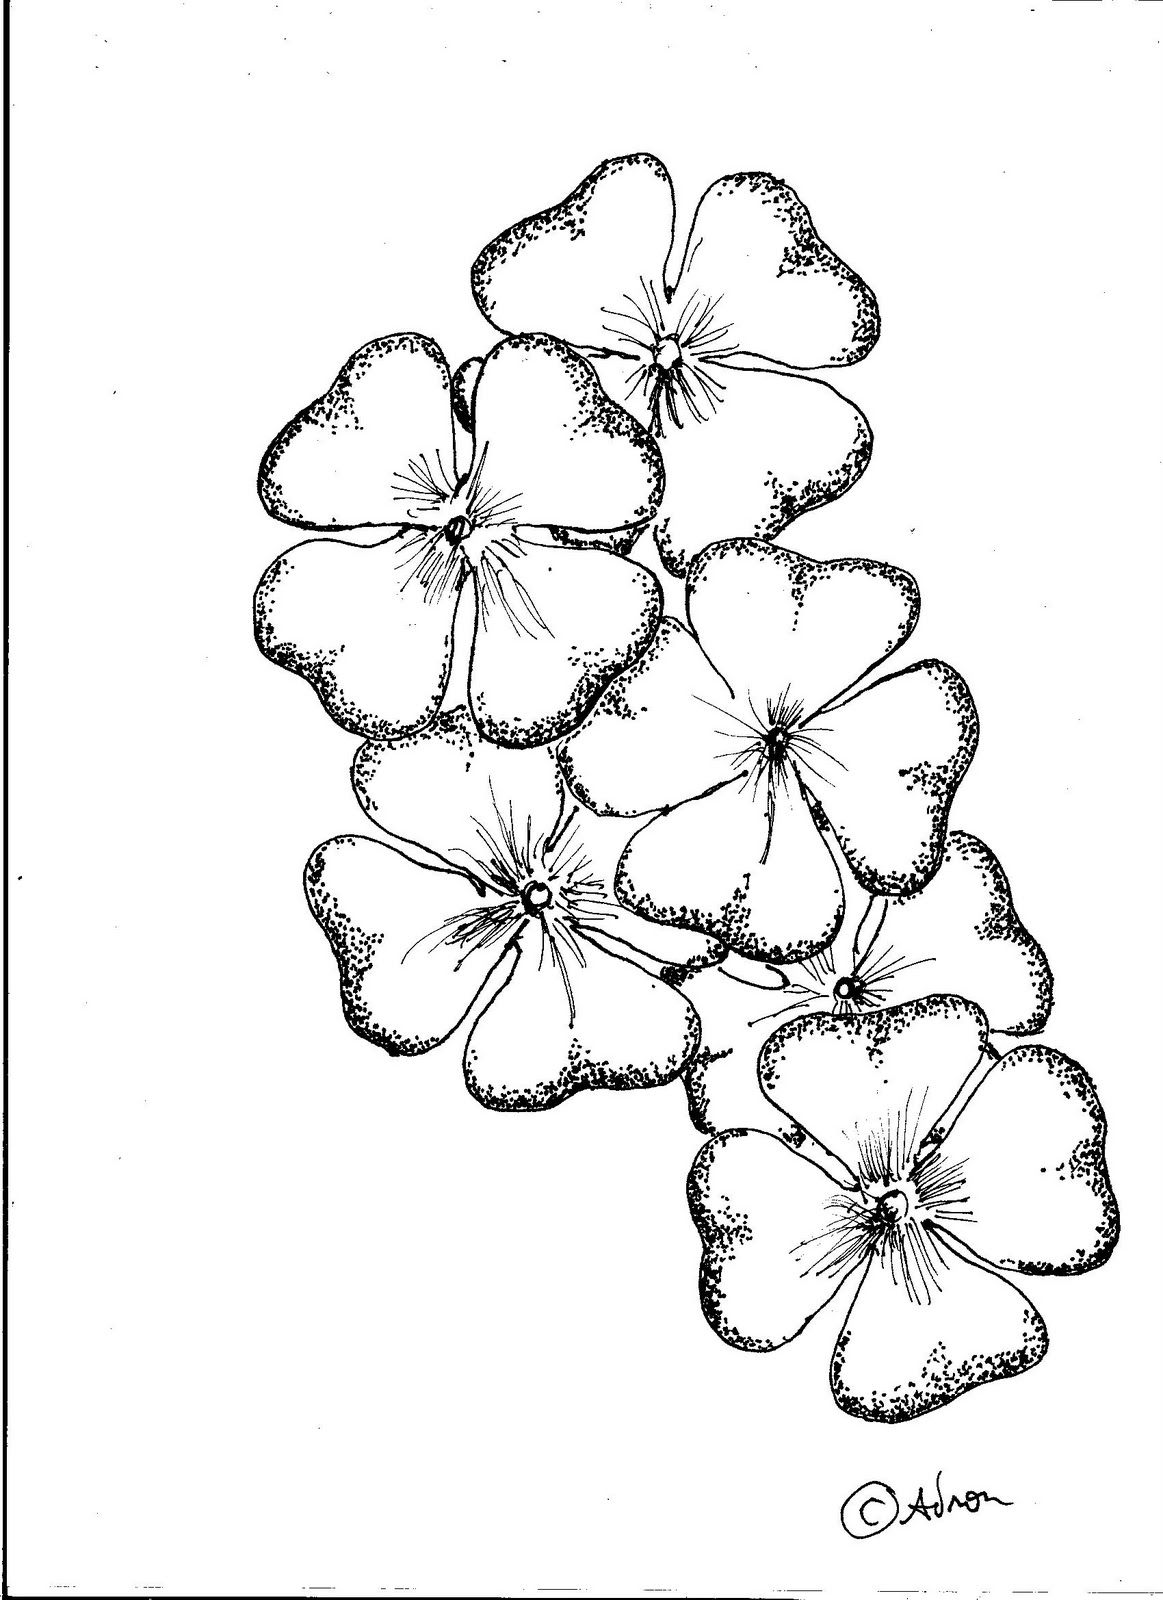 clover drawings | ... leaf clover lesson this free drawing worksheet ...